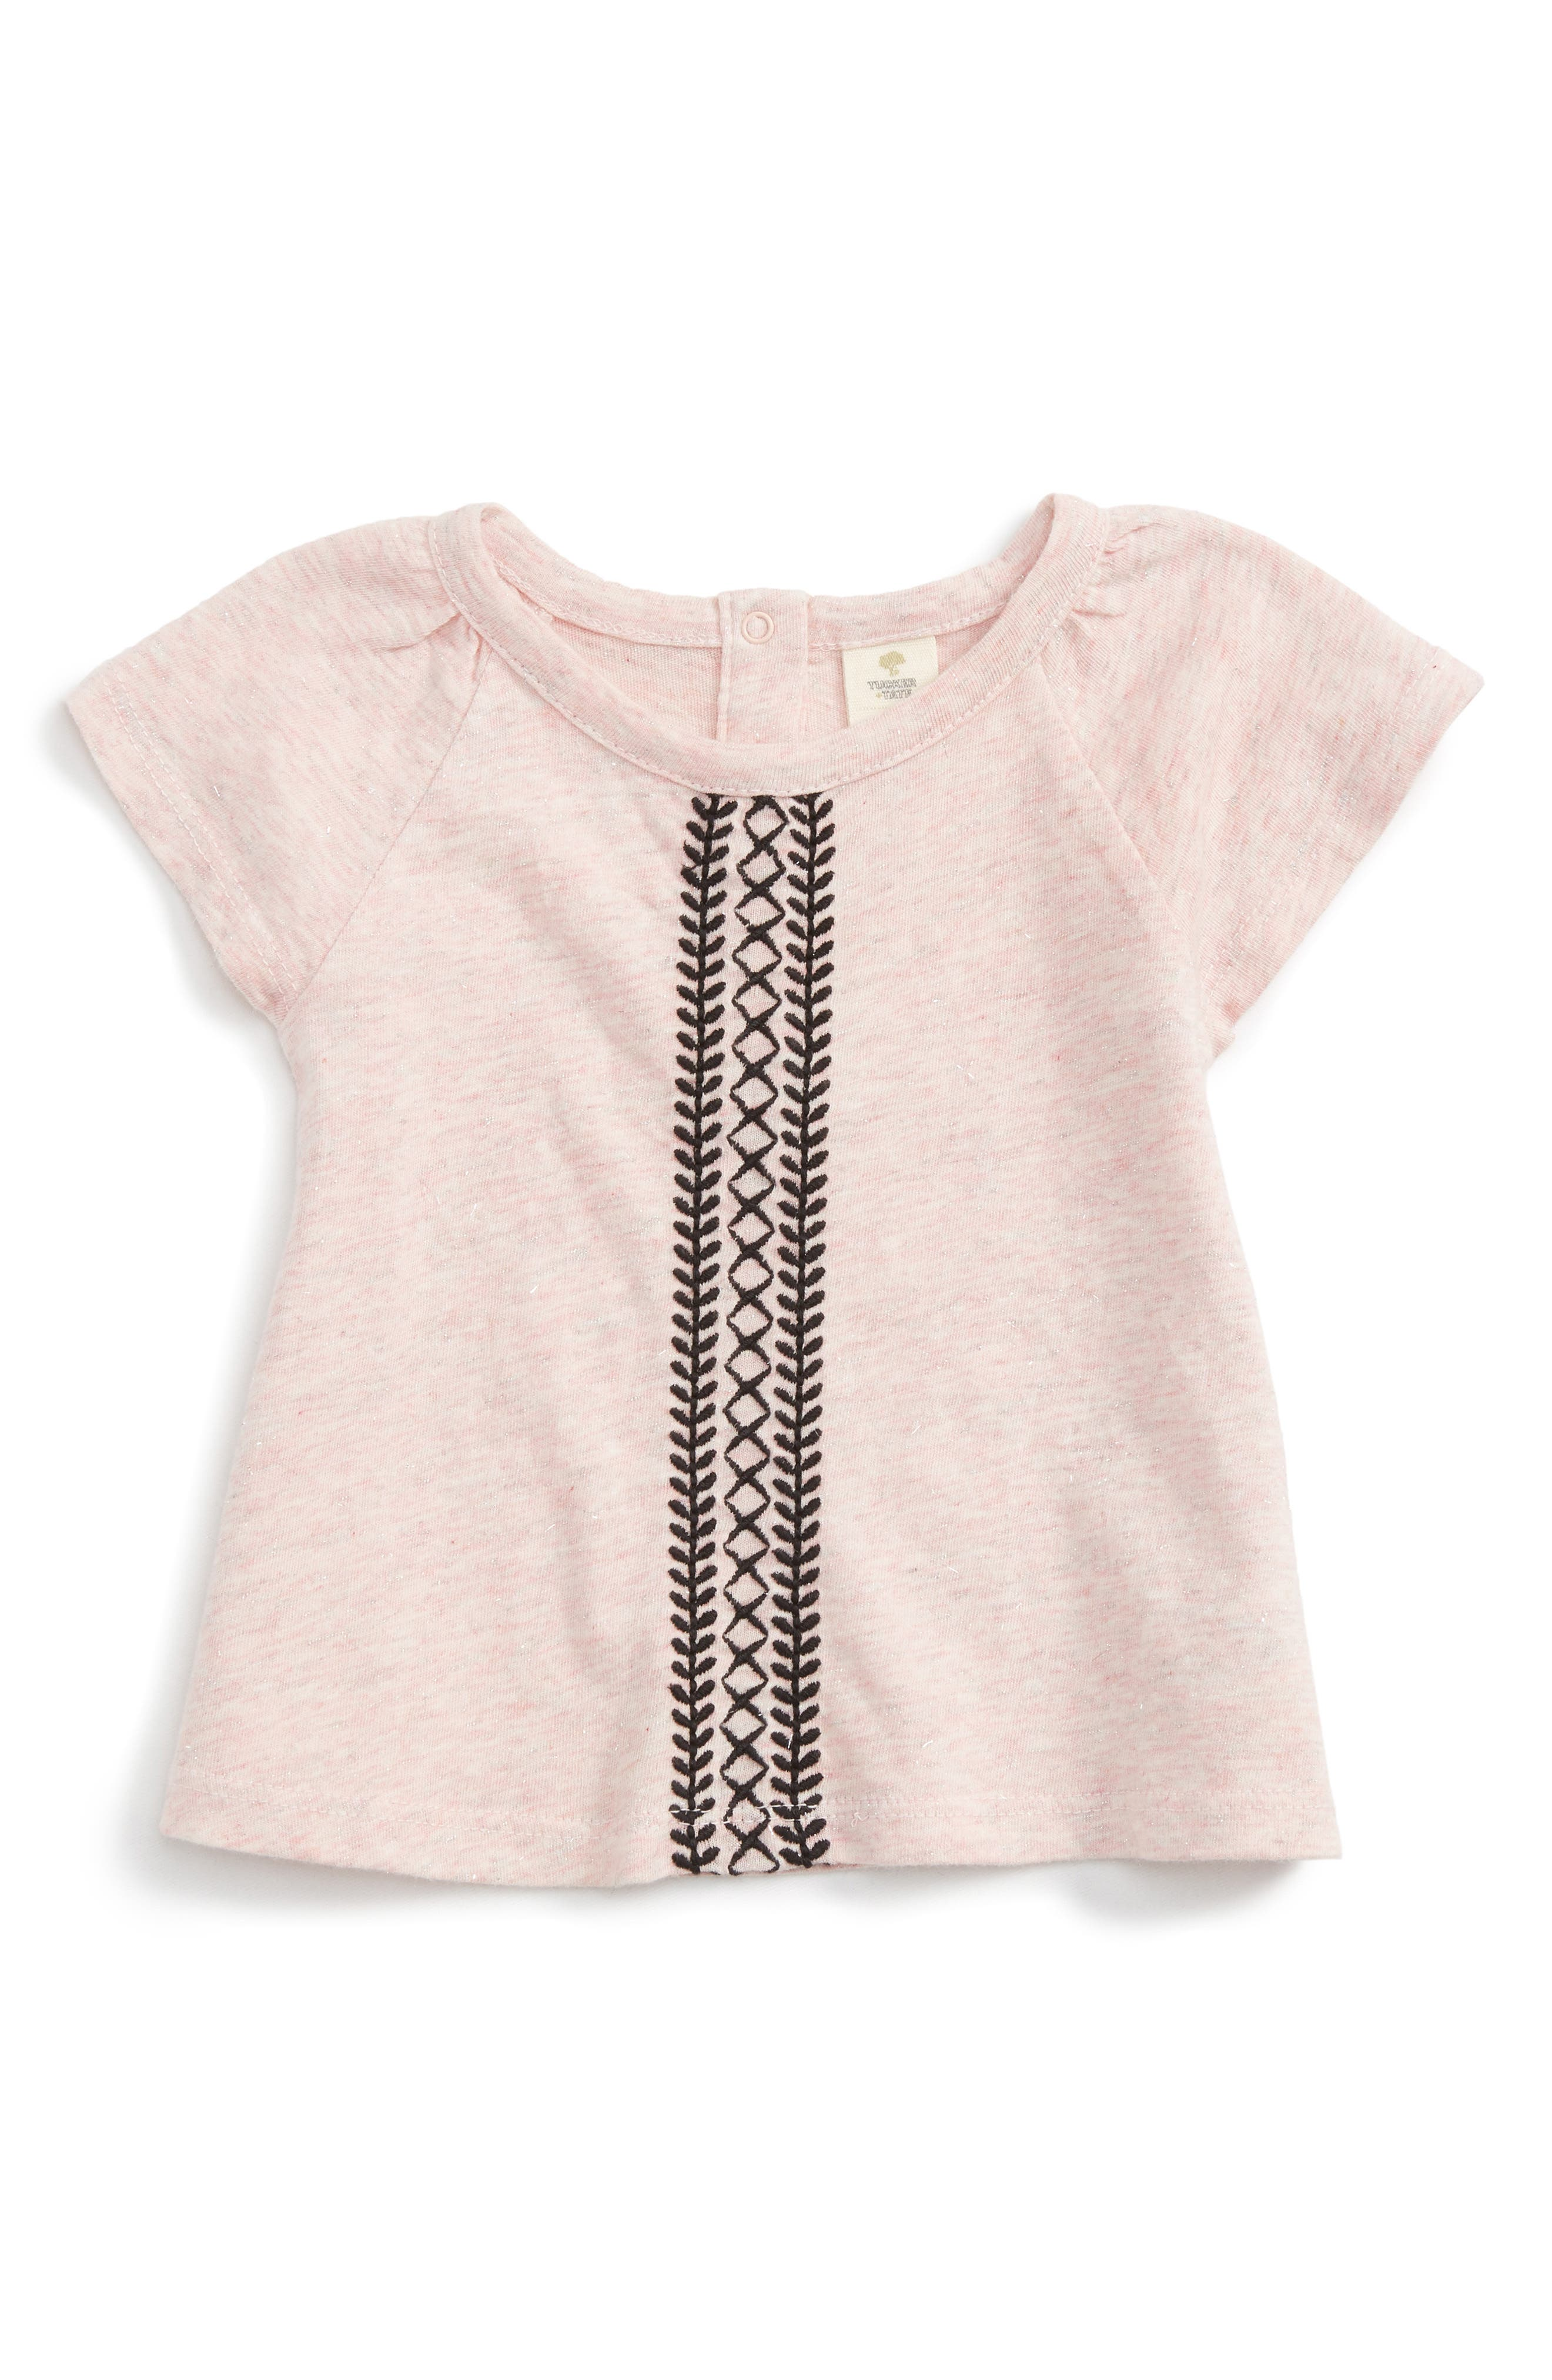 Tucker + Tate Embroidered Sparkle Tee (Baby Girls)